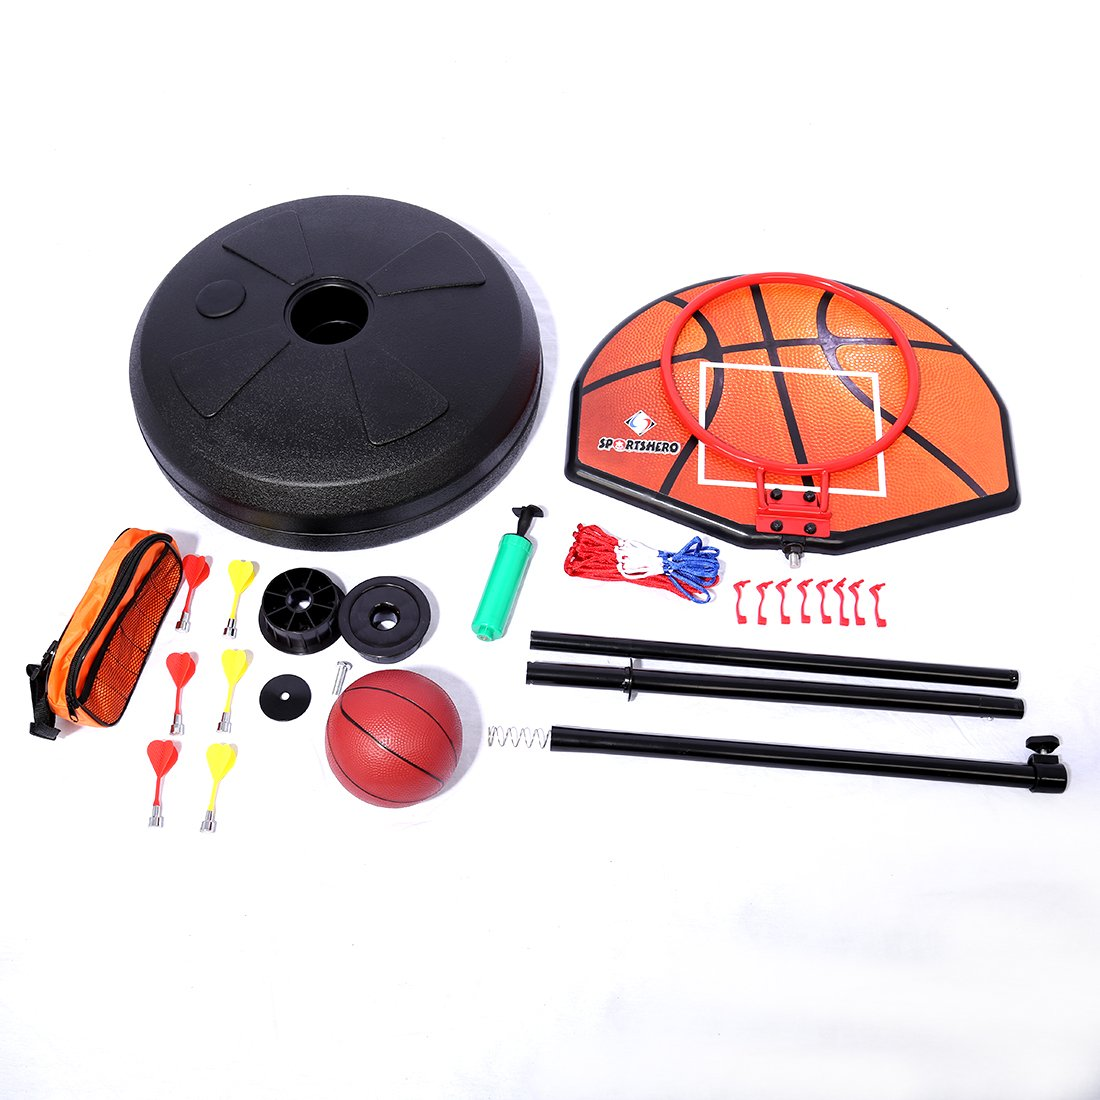 Basketball Stands PINCHUANGHUI 2-in-1 Standing Darts and Basketball Stands Kids Teenagers Goal Hoop Shooting Toy Set by PINCHUANGHUI (Image #5)